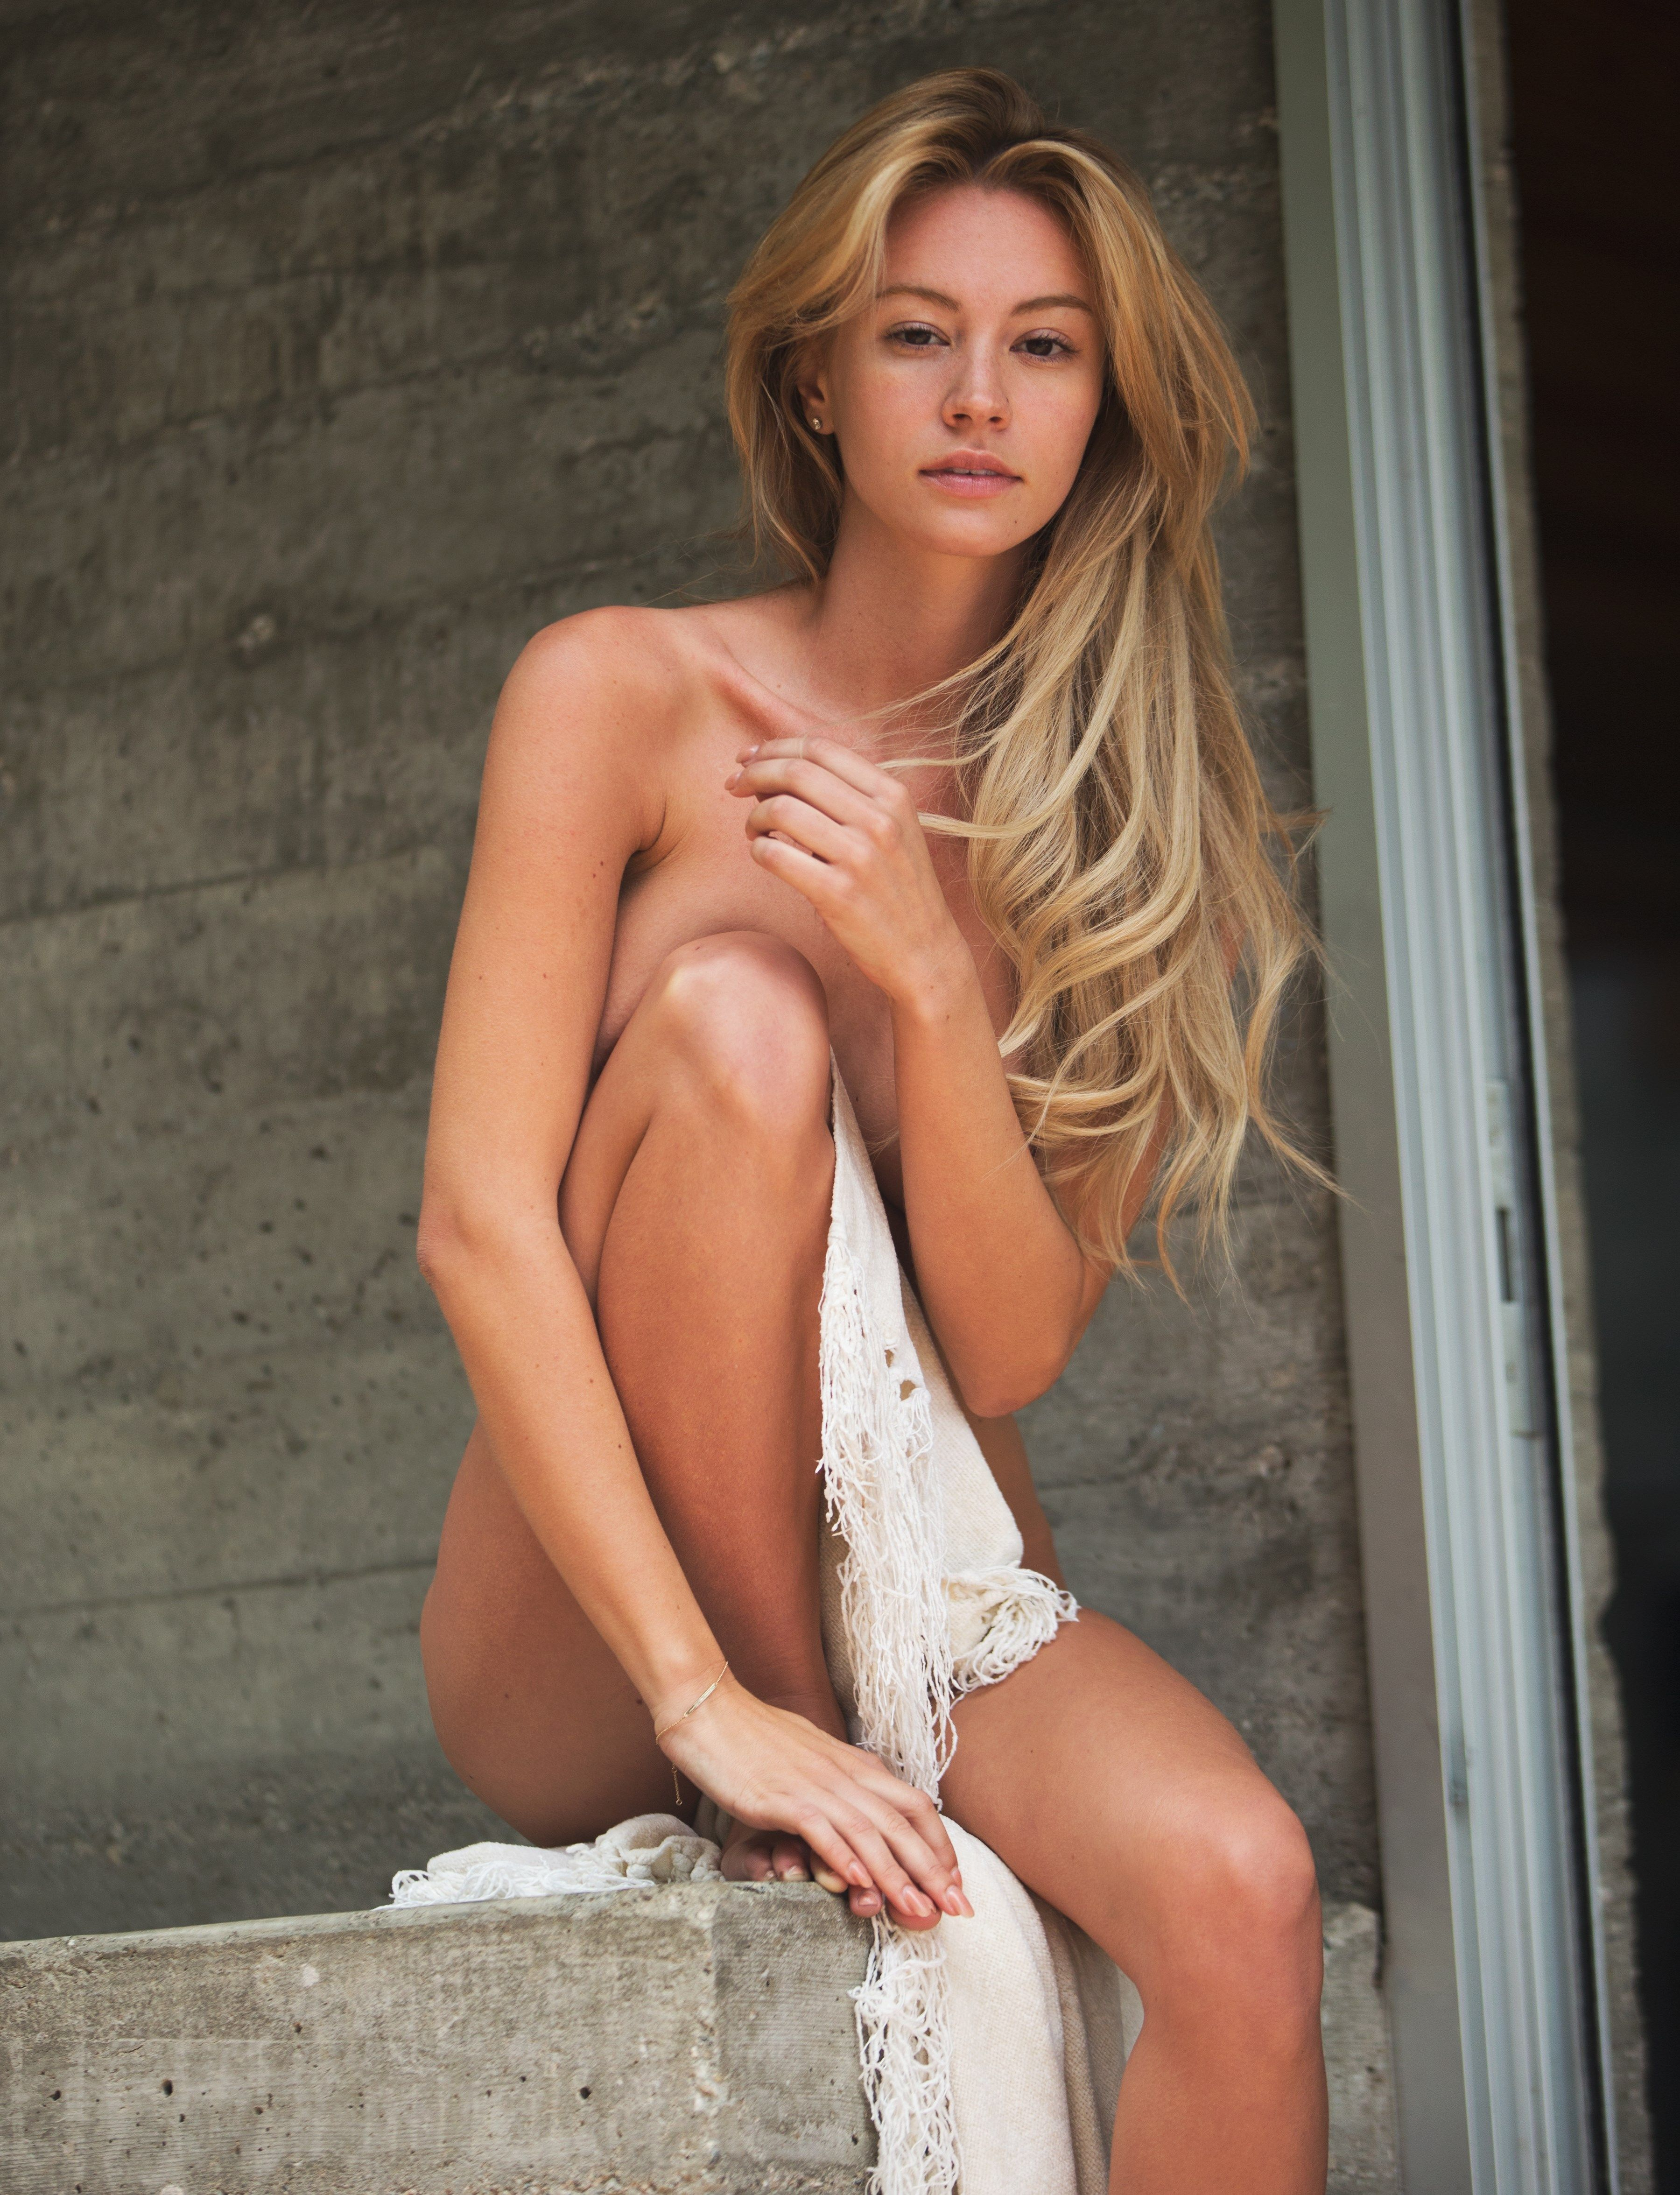 Bryana Holly Nude Photos